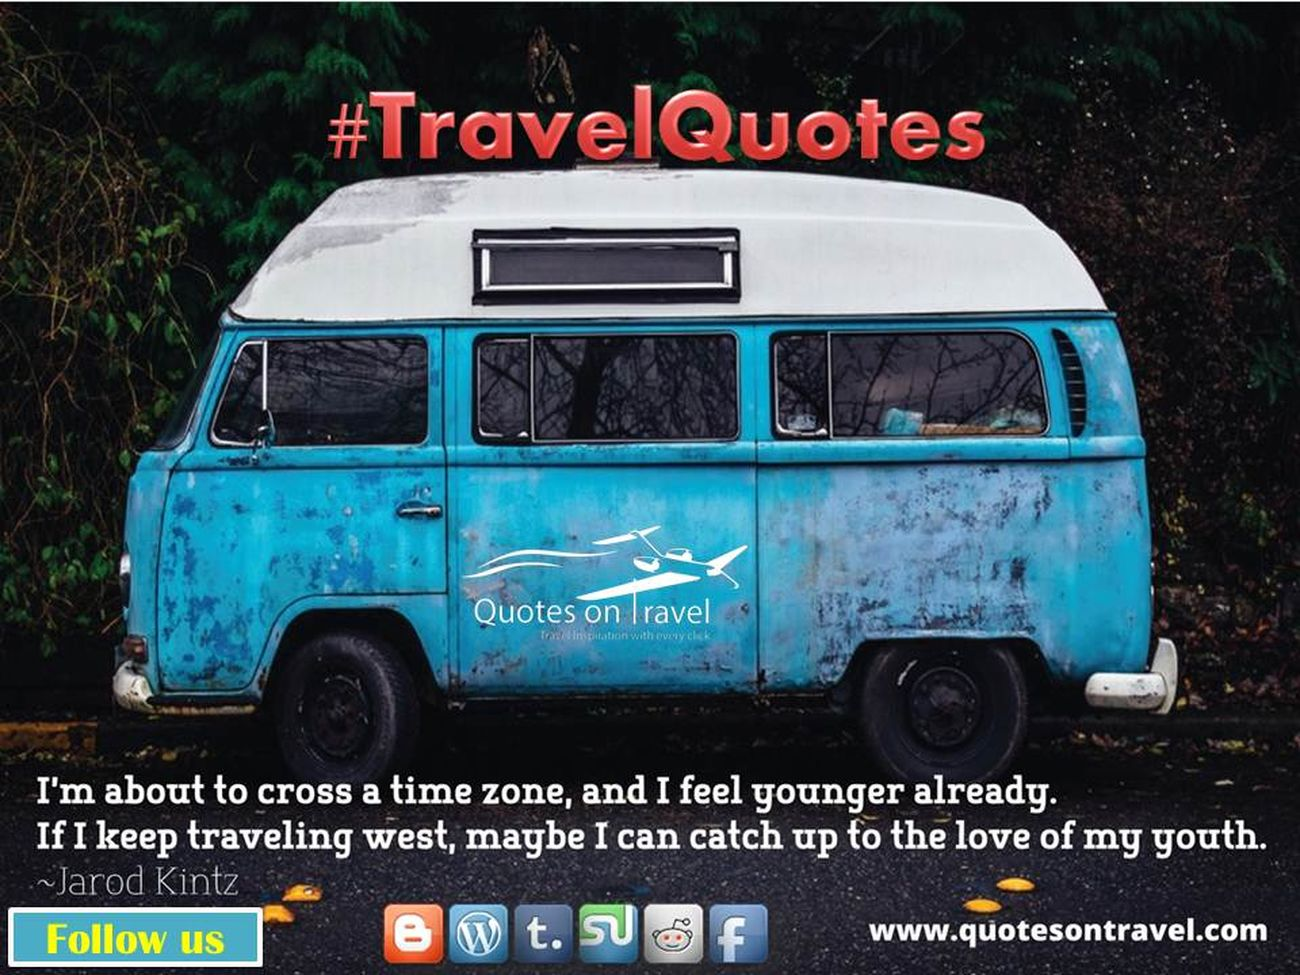 Funny Travel Quotes Quotes On Travel Travel Quotes Travel Quotes And Sayings Traveling